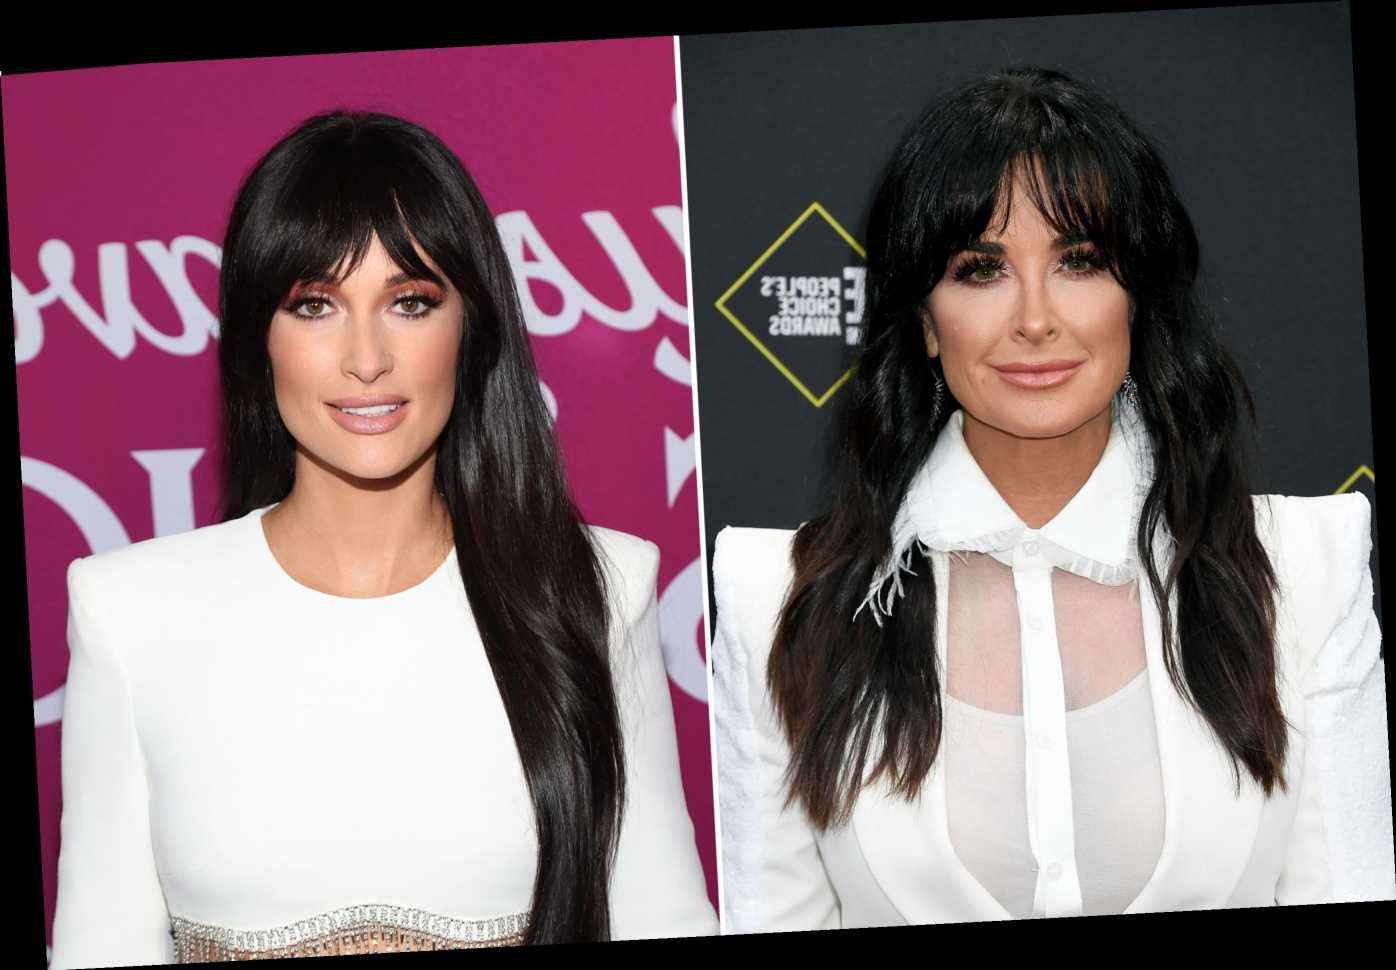 From Kyle and Kacey to Courteney and Demi, You Won't Believe These Celebrity Look-alikes!